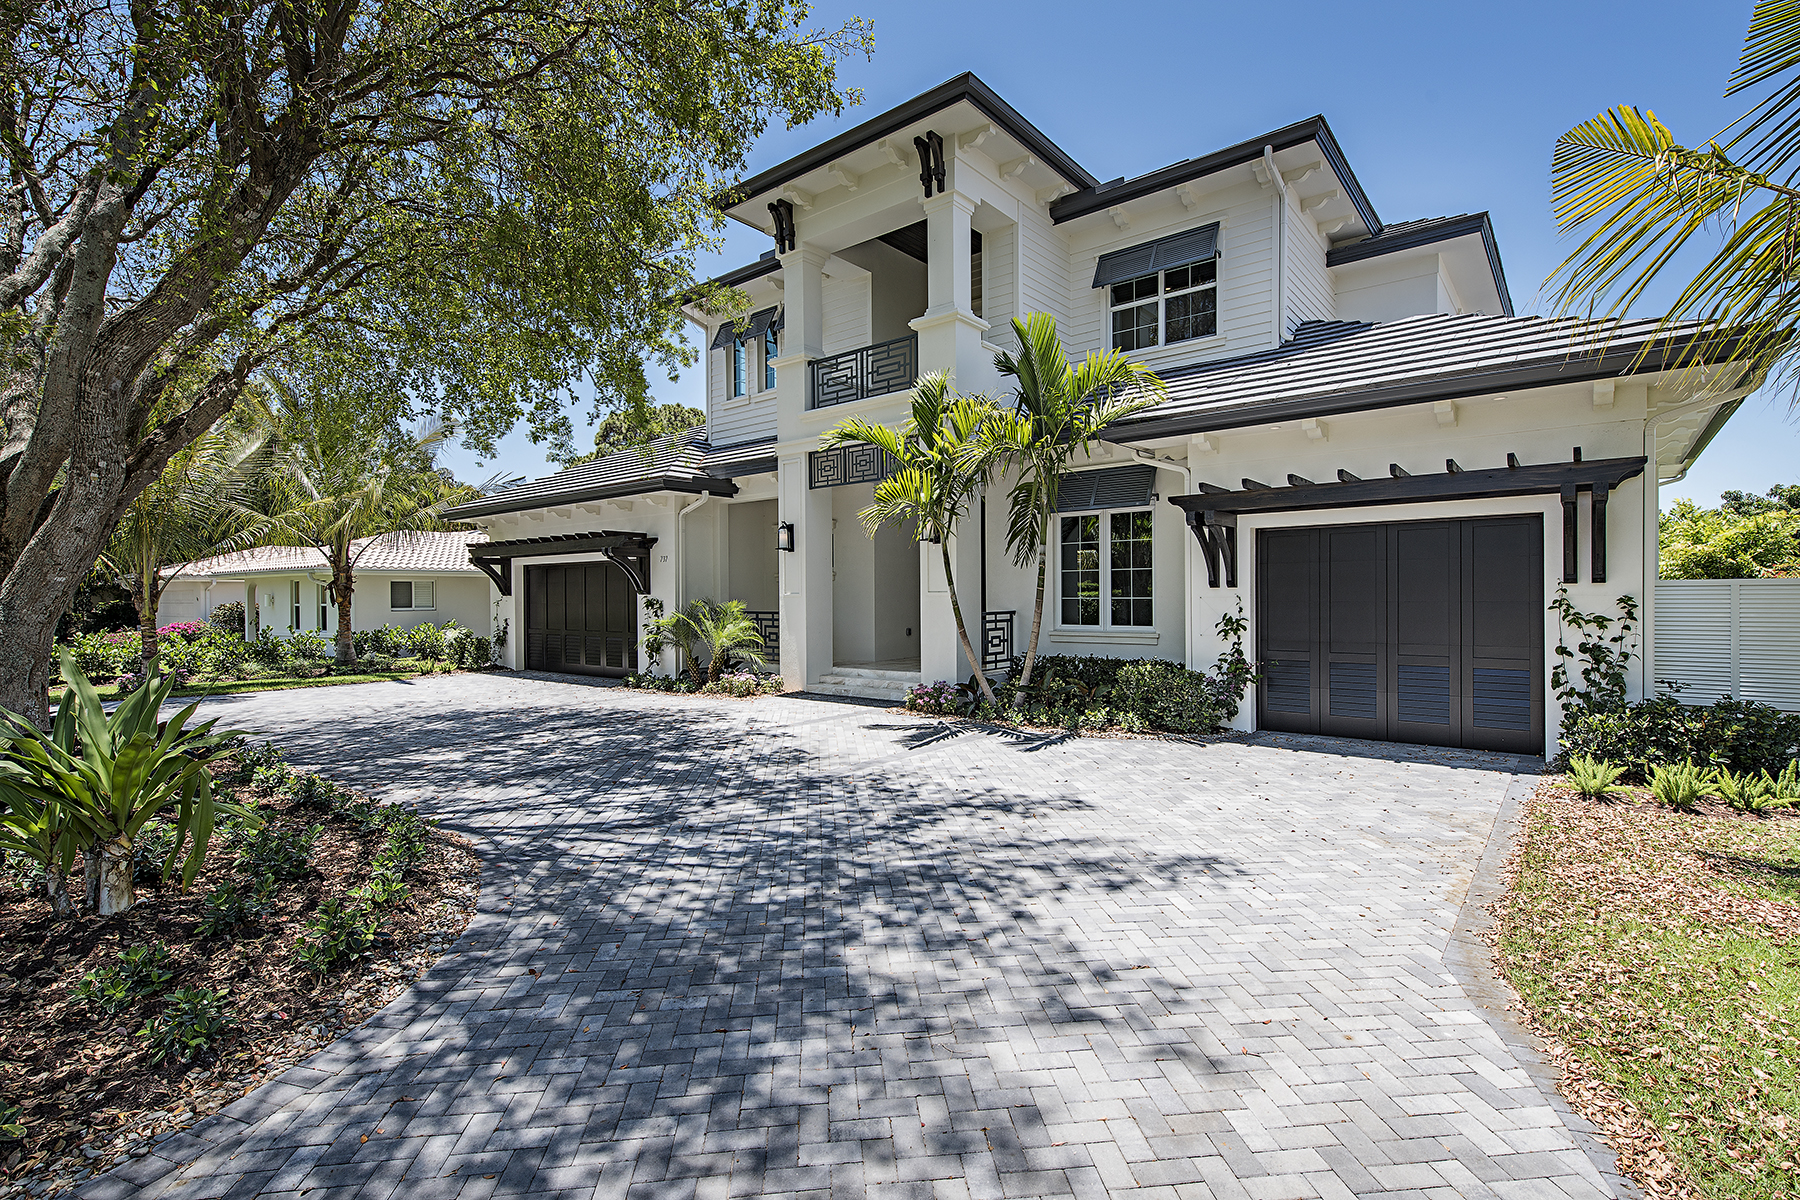 Single Family Home for Sale at Naples - Park Shore 737 Willowhead Dr Naples, Florida, 34103 United States